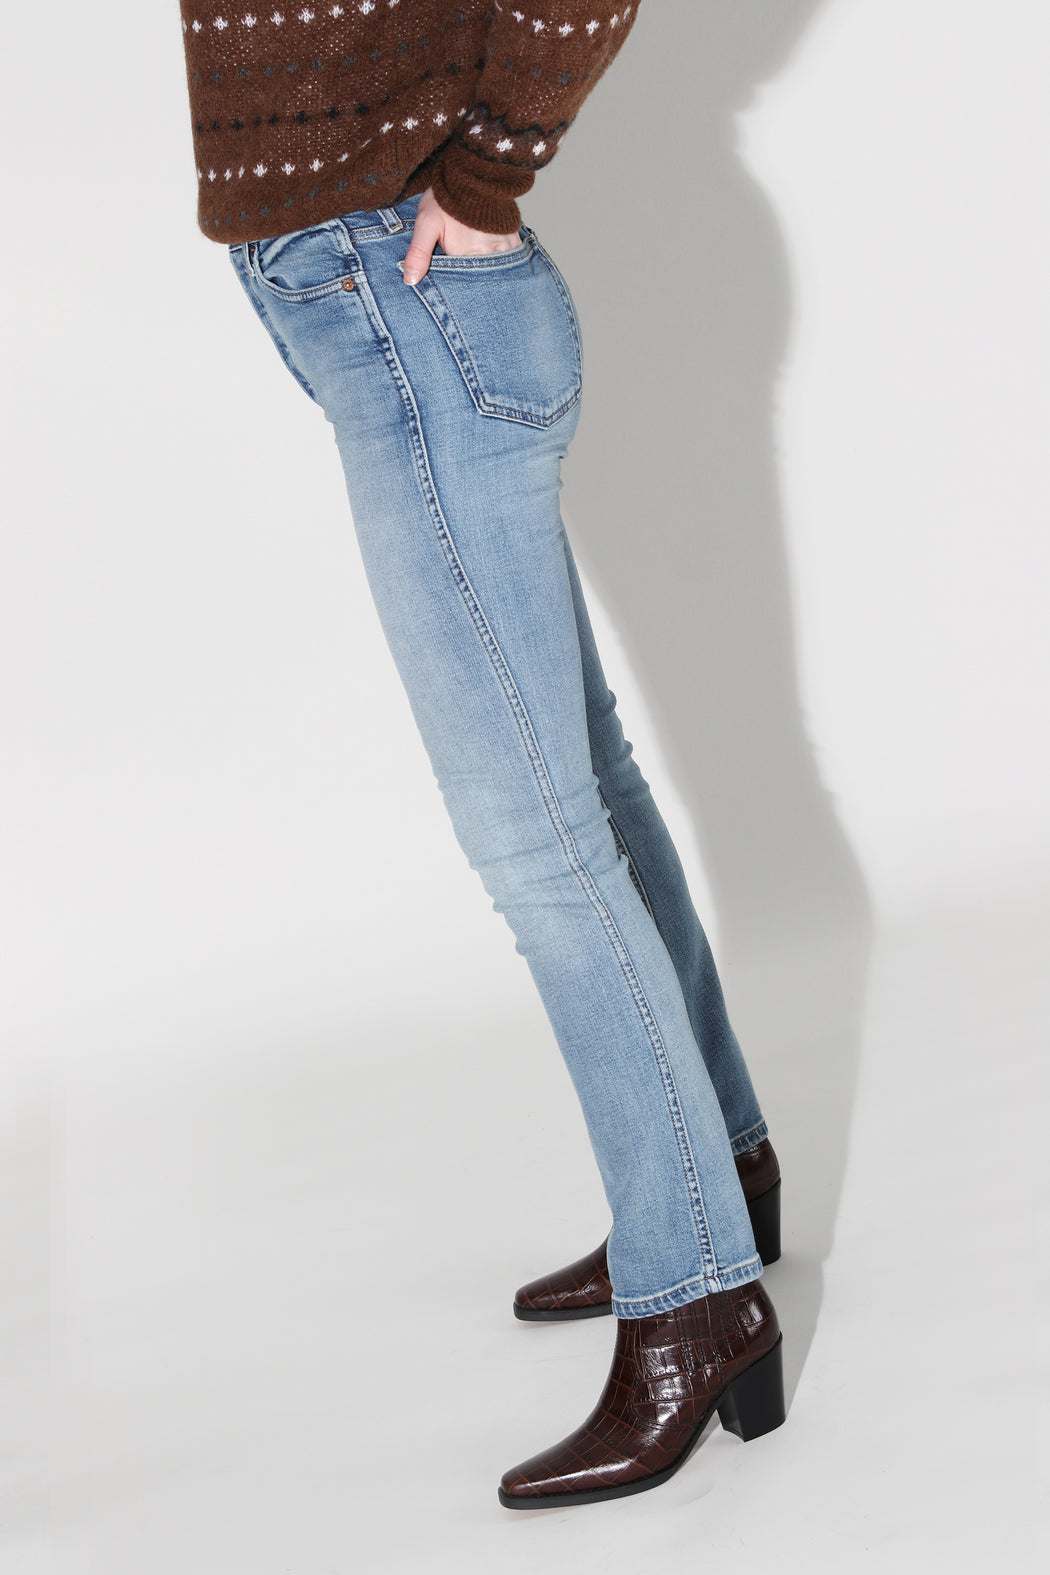 Redone Comfort Stretch Double Needle Long Jean Hazey Indigo